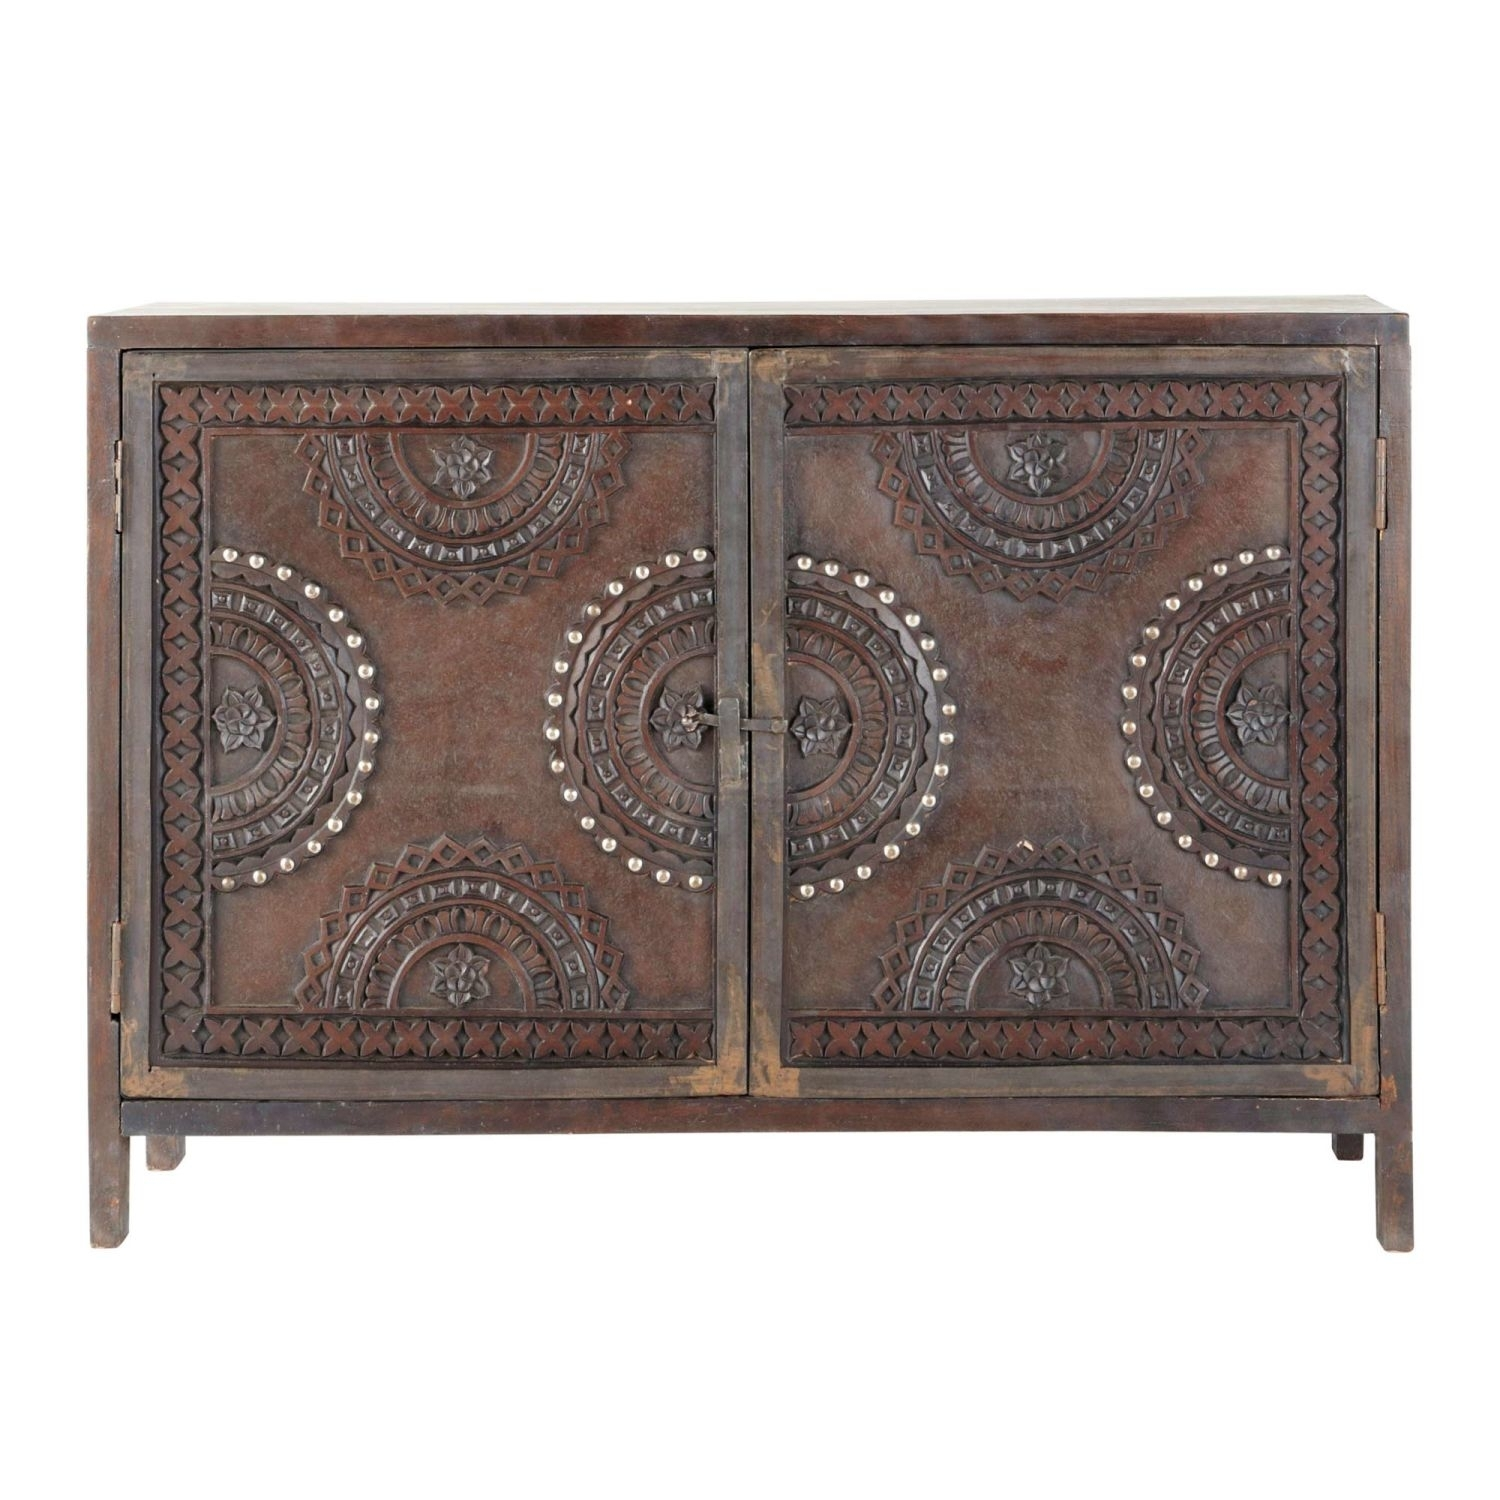 Mango Wood Carved Sideboard In Brown W 115Cm | Maisons Du Monde Intended For Carved 4 Door Metal Frame Sideboards (View 27 of 30)